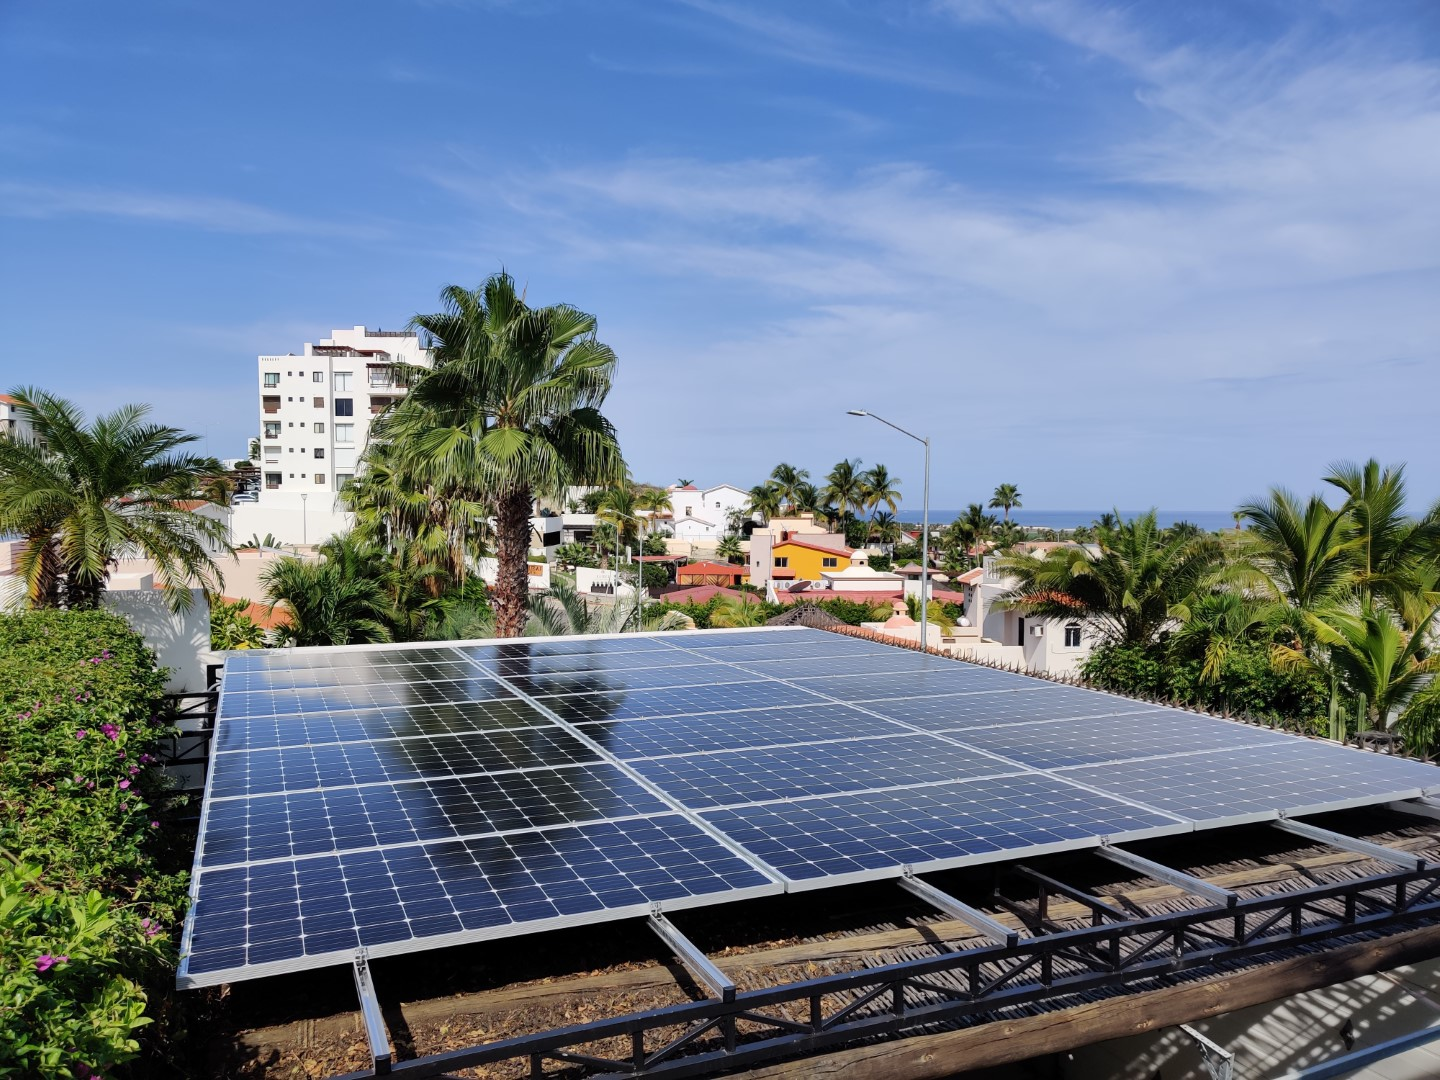 Finisterra solar - Cabo Green Power